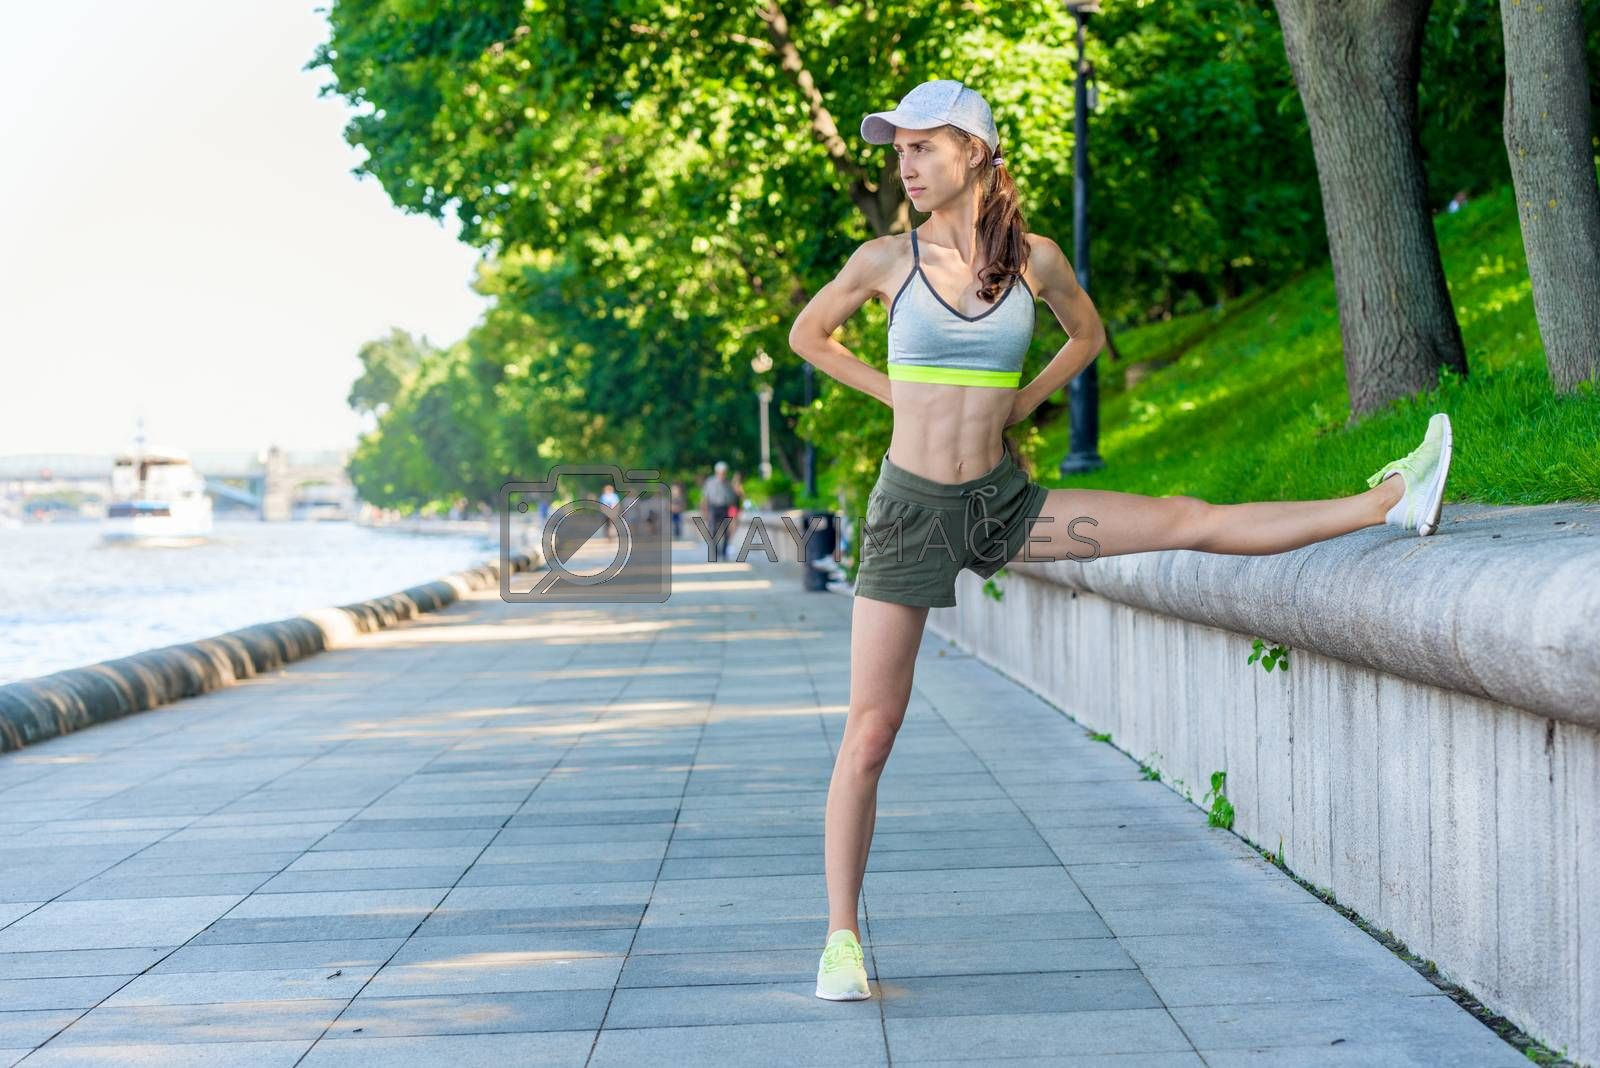 sporty woman warming up before jogging in a city park, portrait  by Labunskiy K.